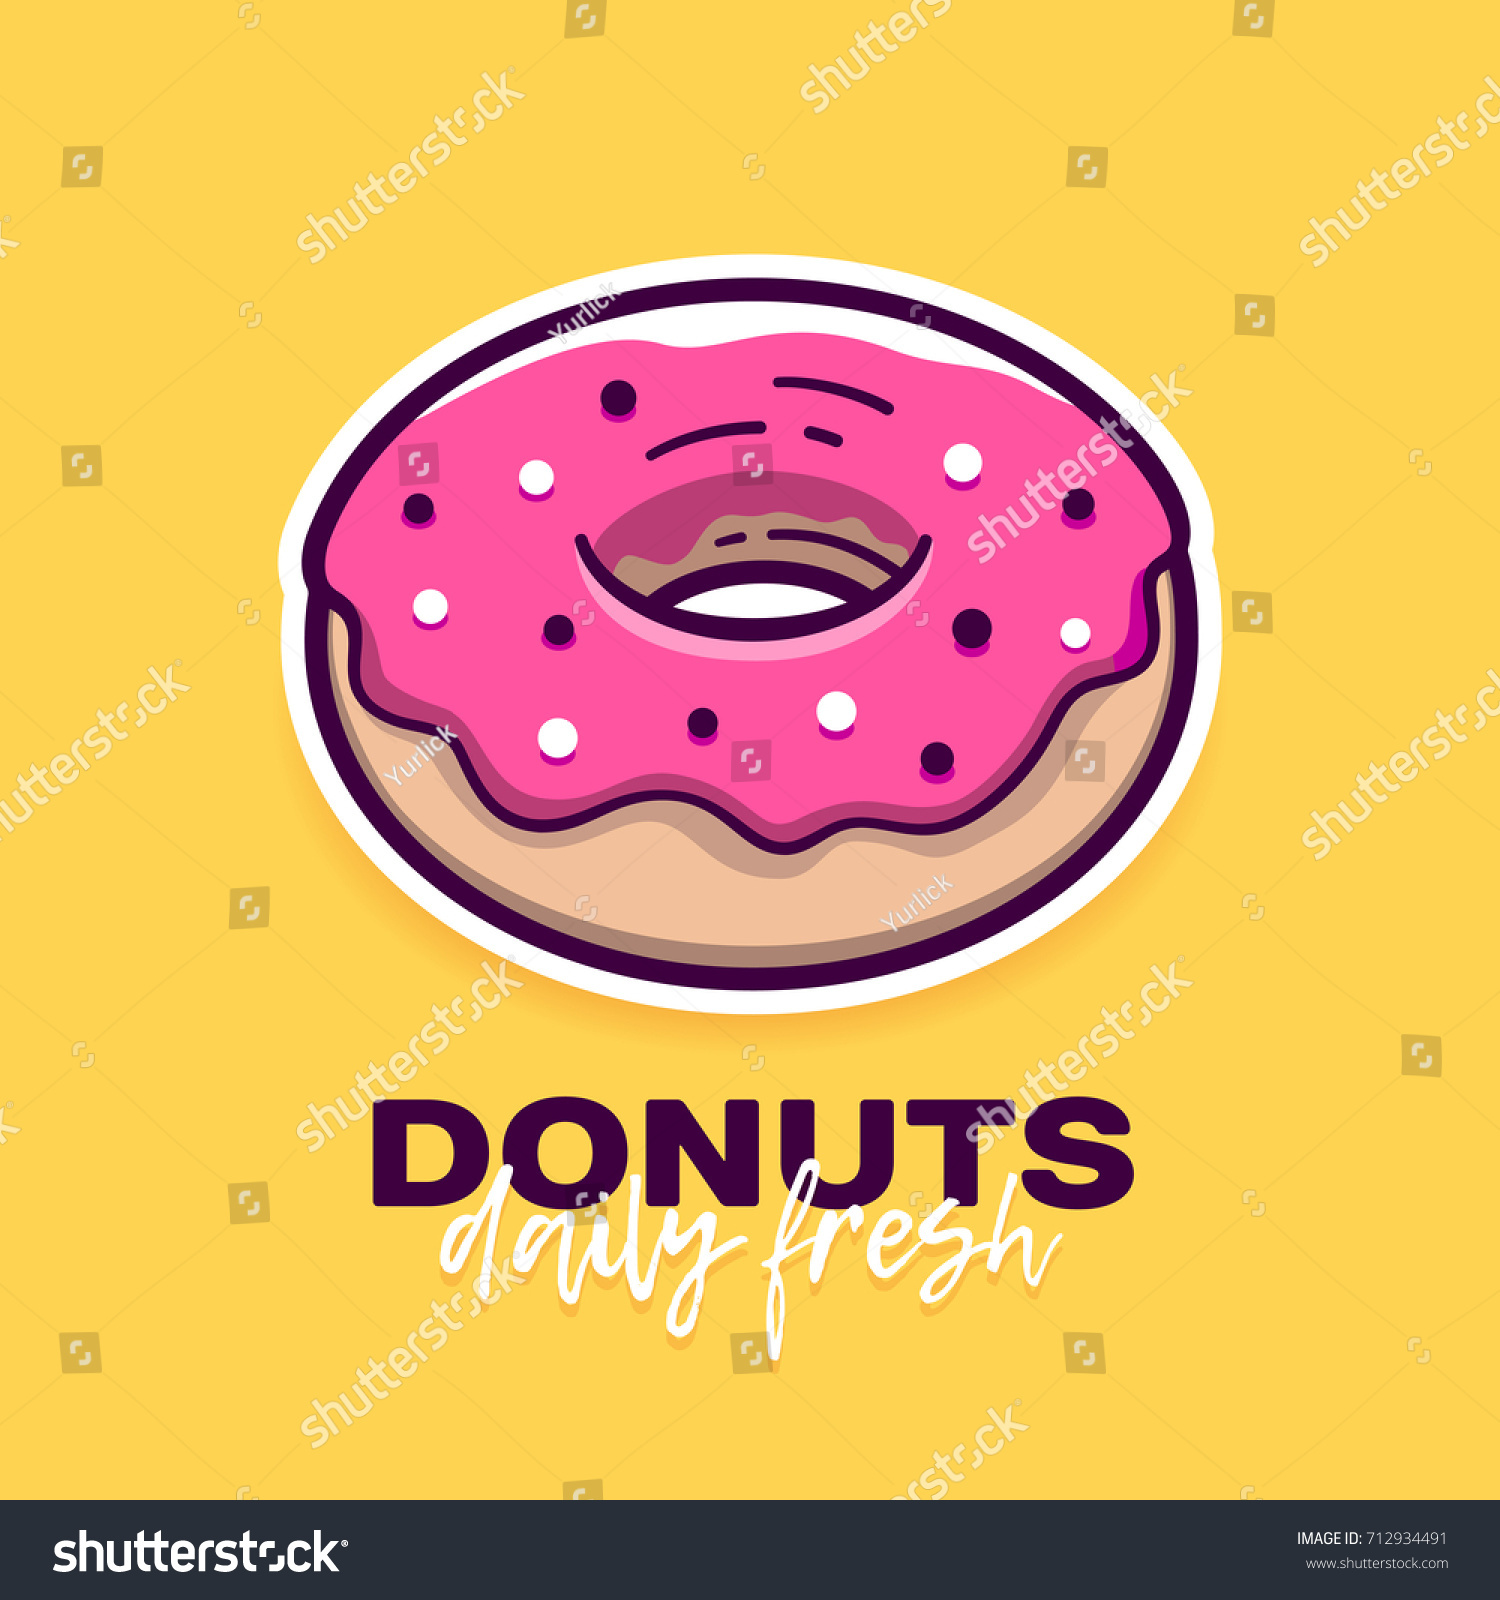 Cartoon Doughnut Factory: Donut Pink Icing Modern Flat Outline Stock Vector